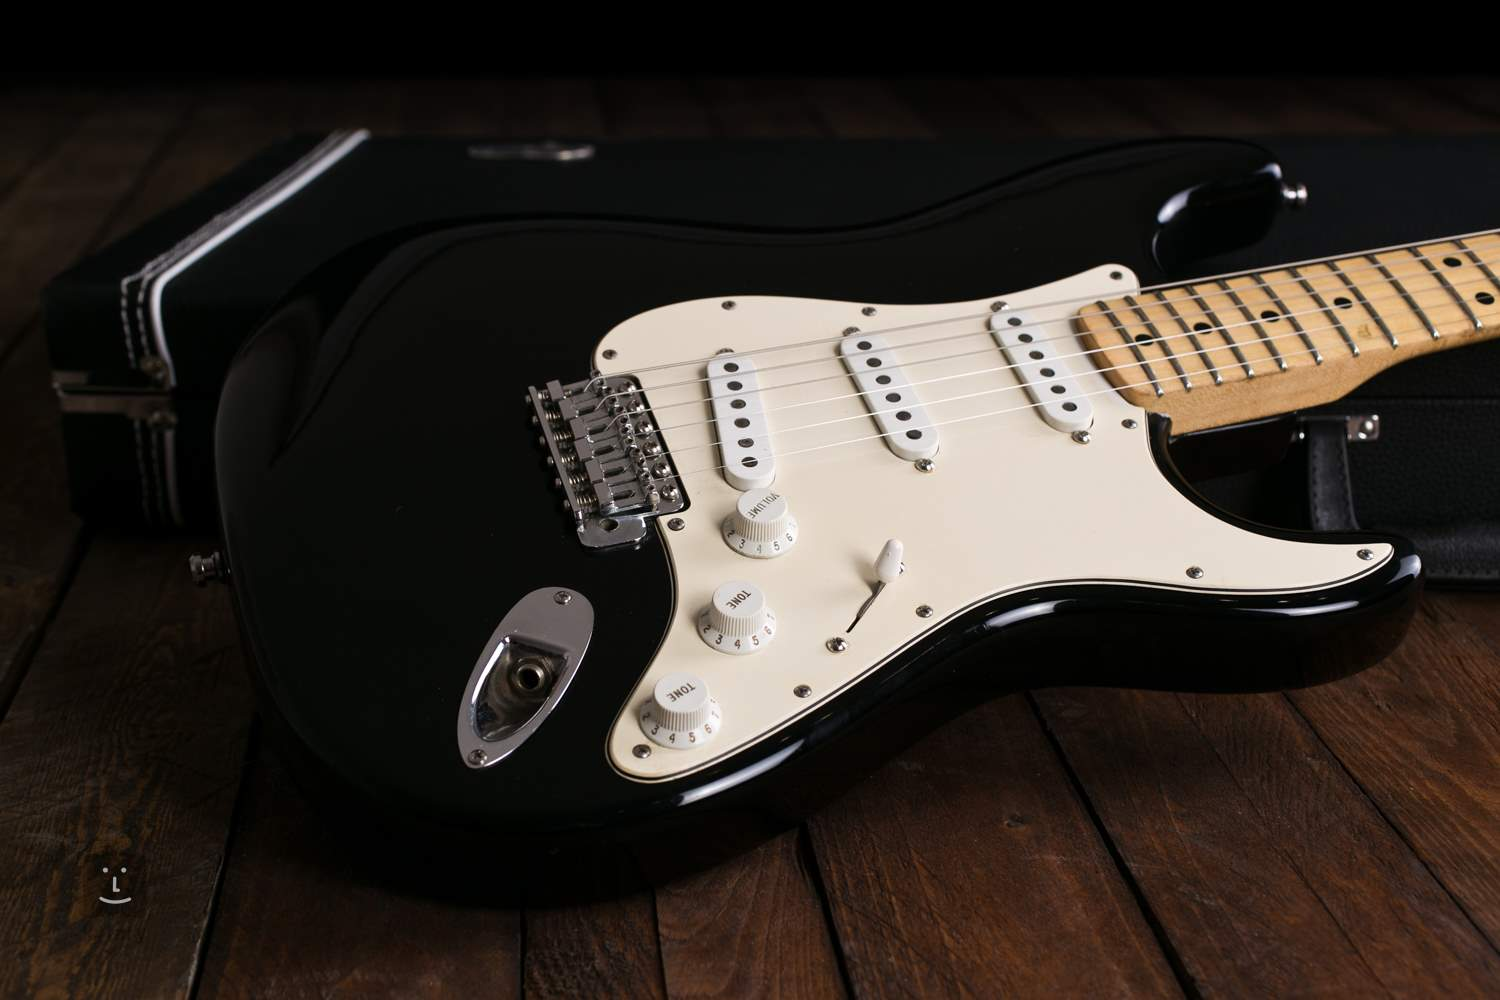 fender 1975 stratocaster body refinish electric guitar. Black Bedroom Furniture Sets. Home Design Ideas